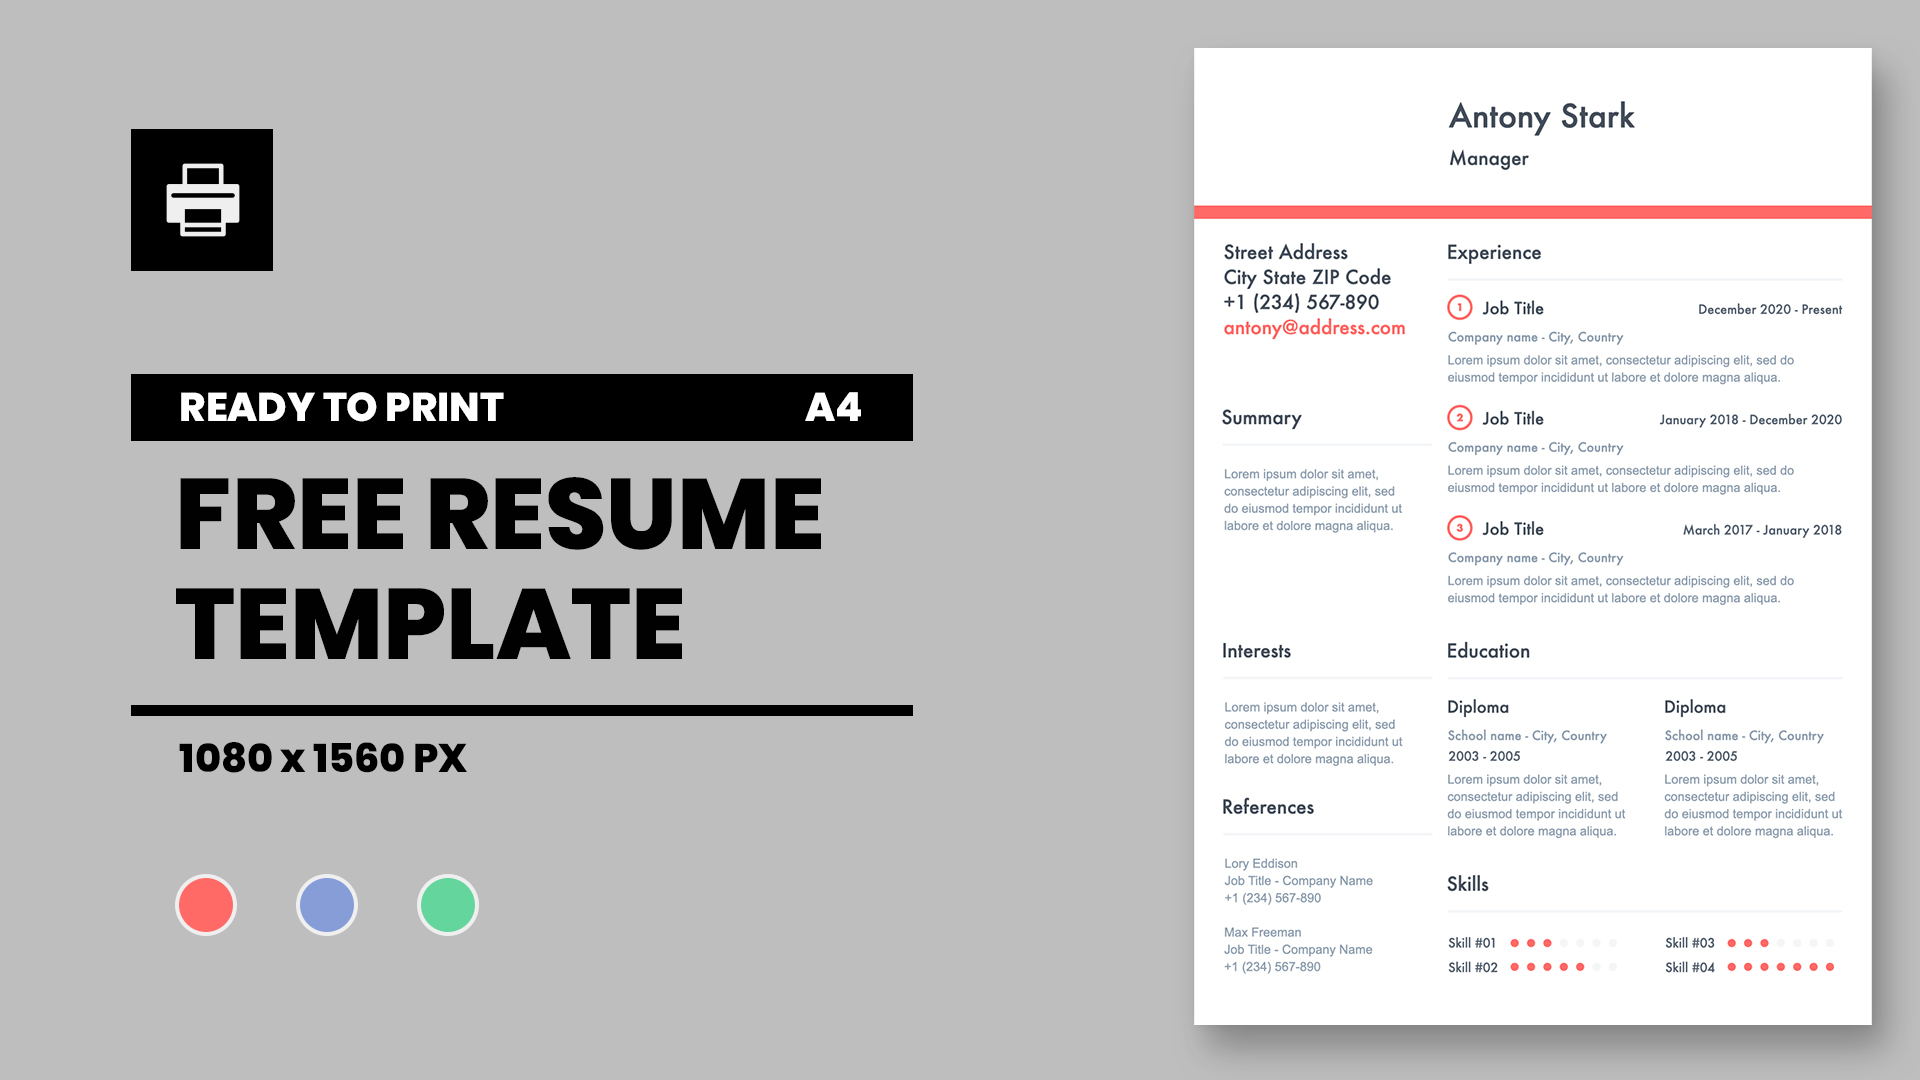 Resume template in Keynote presentation